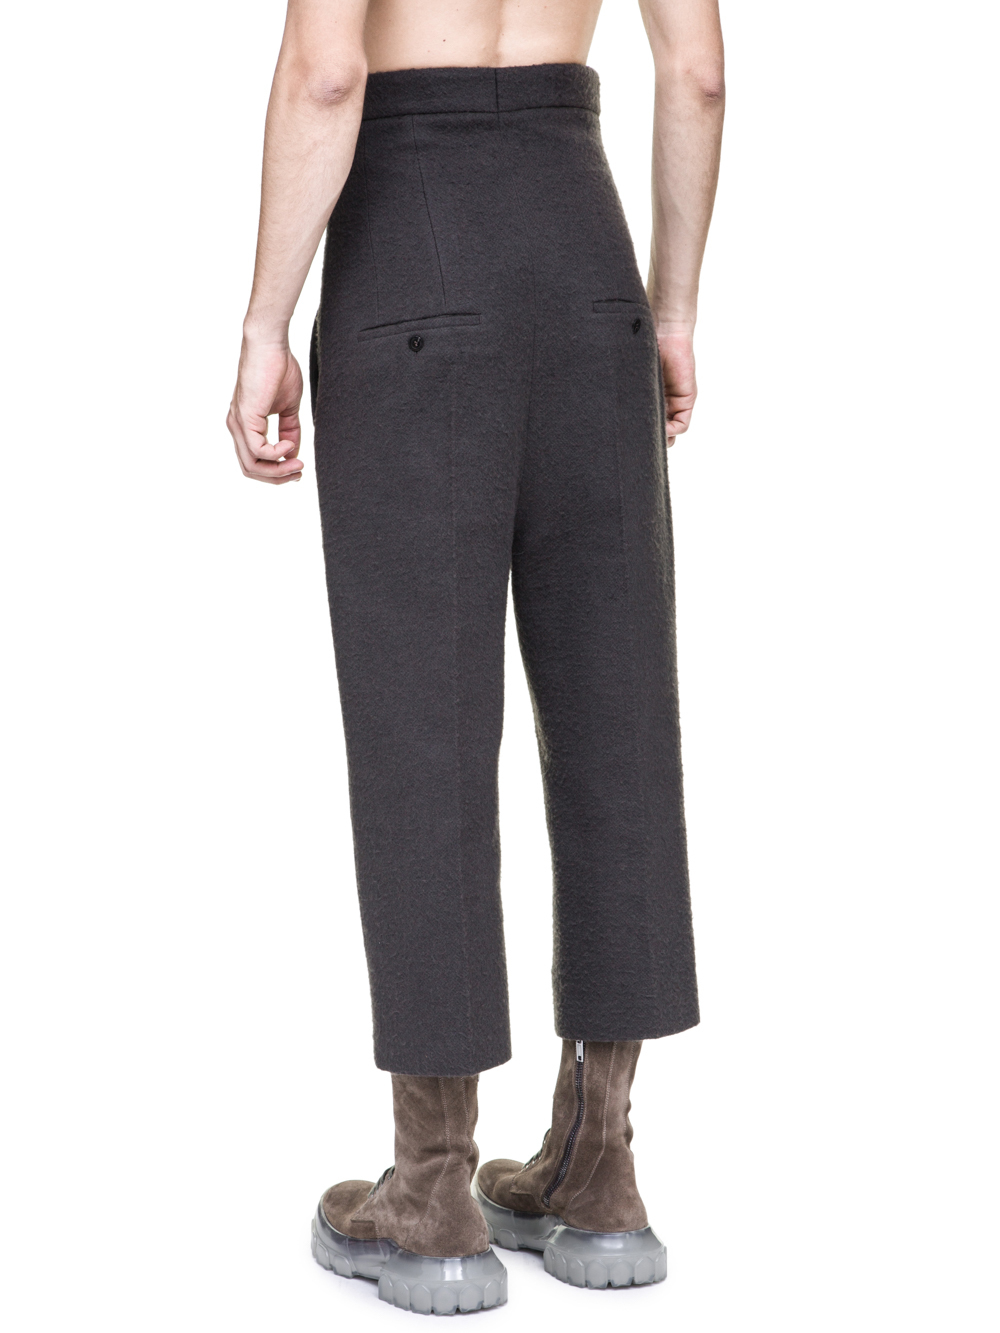 RICK OWENS OFF-THE-RUNWAY DIRT JEANS IN DUST GREY CAMEL WOOL ARE EXTREMELY HIGH-WAISTED